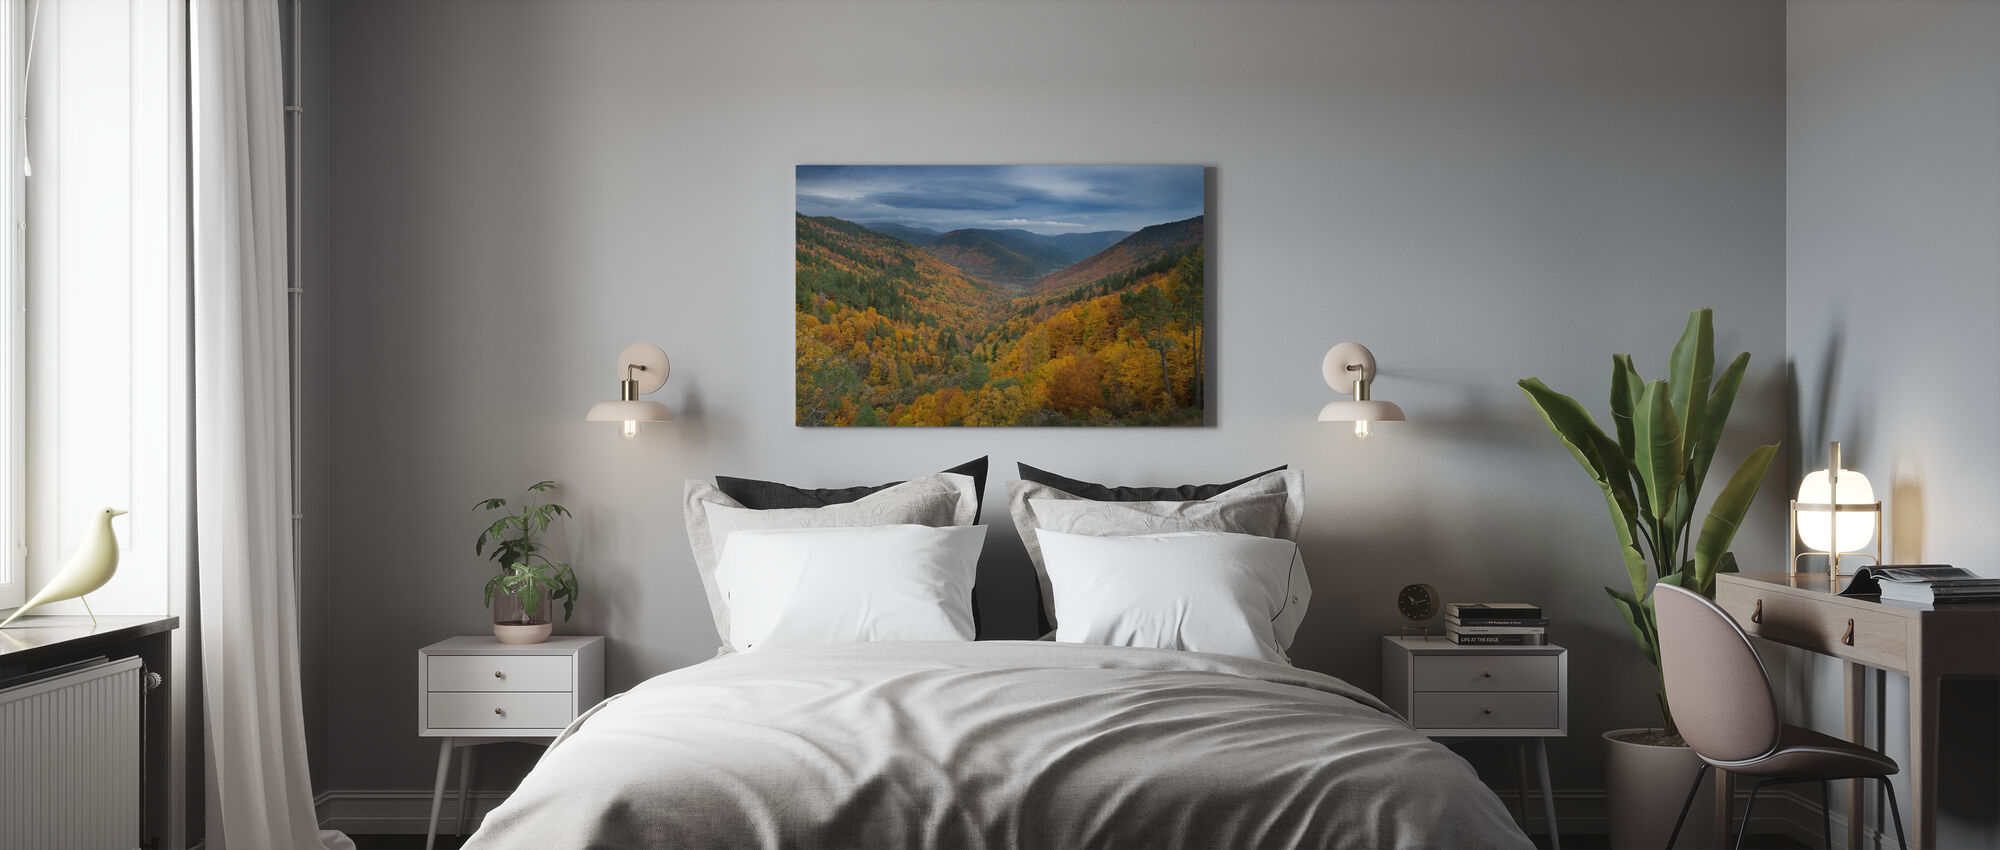 Forest in the Estrela Mountain Range - Canvas print - Bedroom